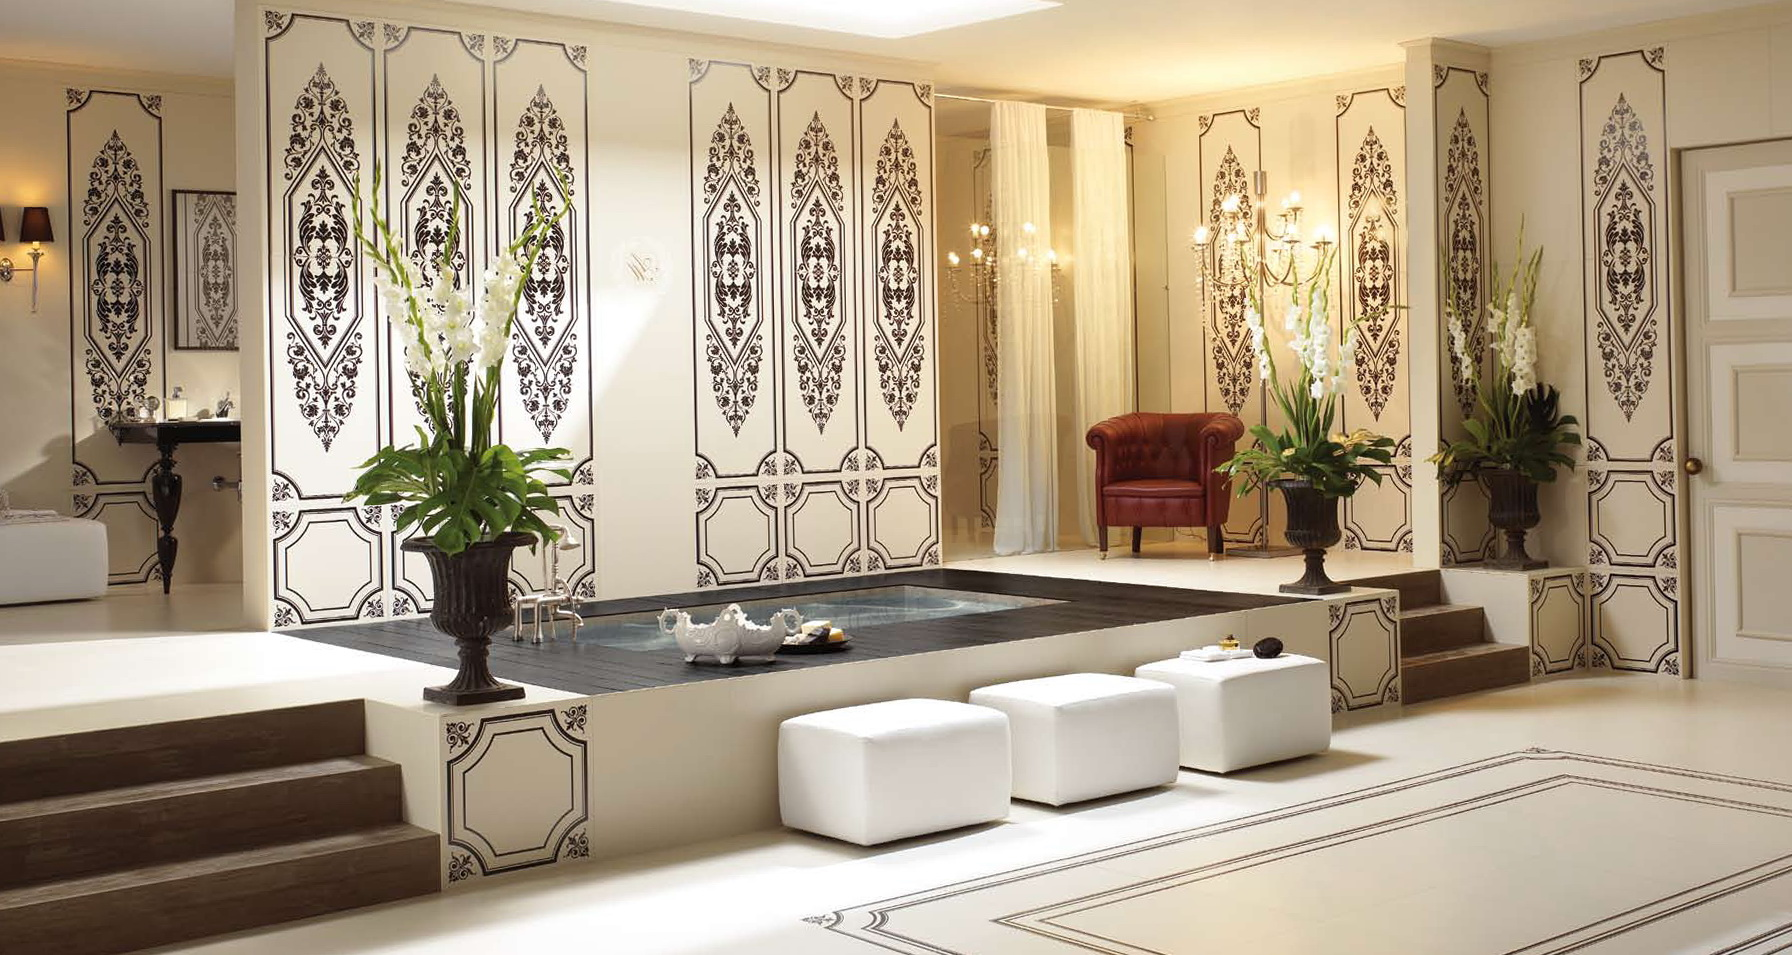 how to use the tiles in the interior | home interior design